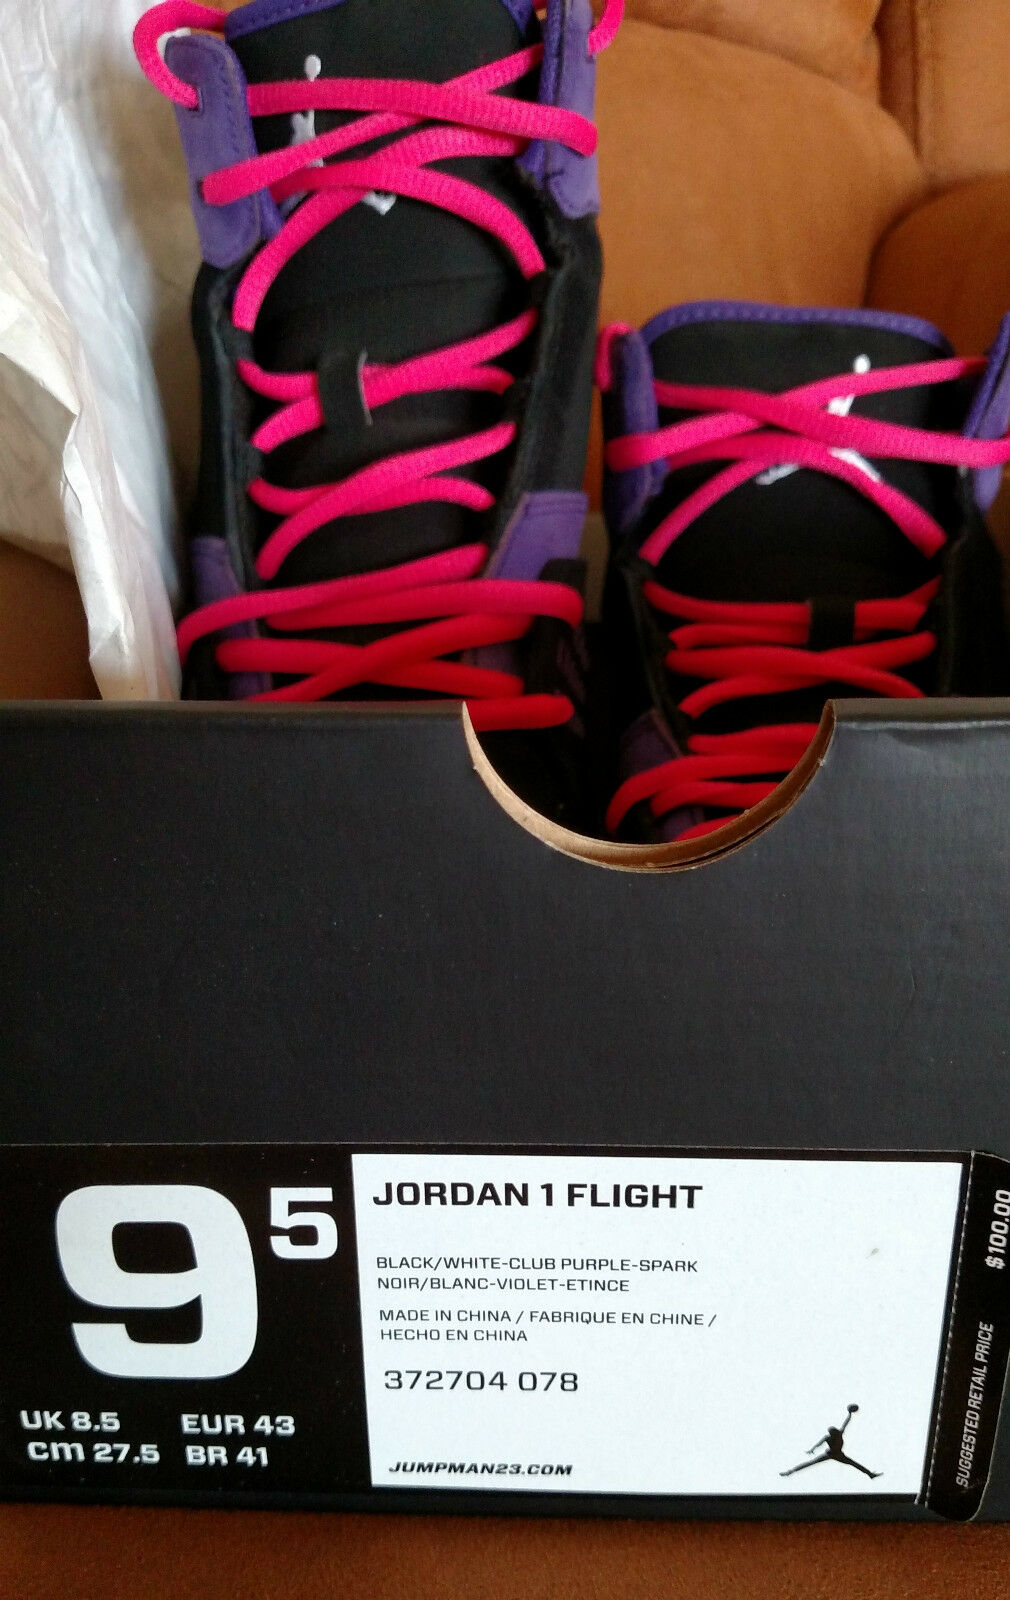 EUC NIKE AIR JORDAN 1 FLIGHT BLK/WHT/PURPLE 372704 078 SIZE 9-1/2 The latest discount shoes for men and women